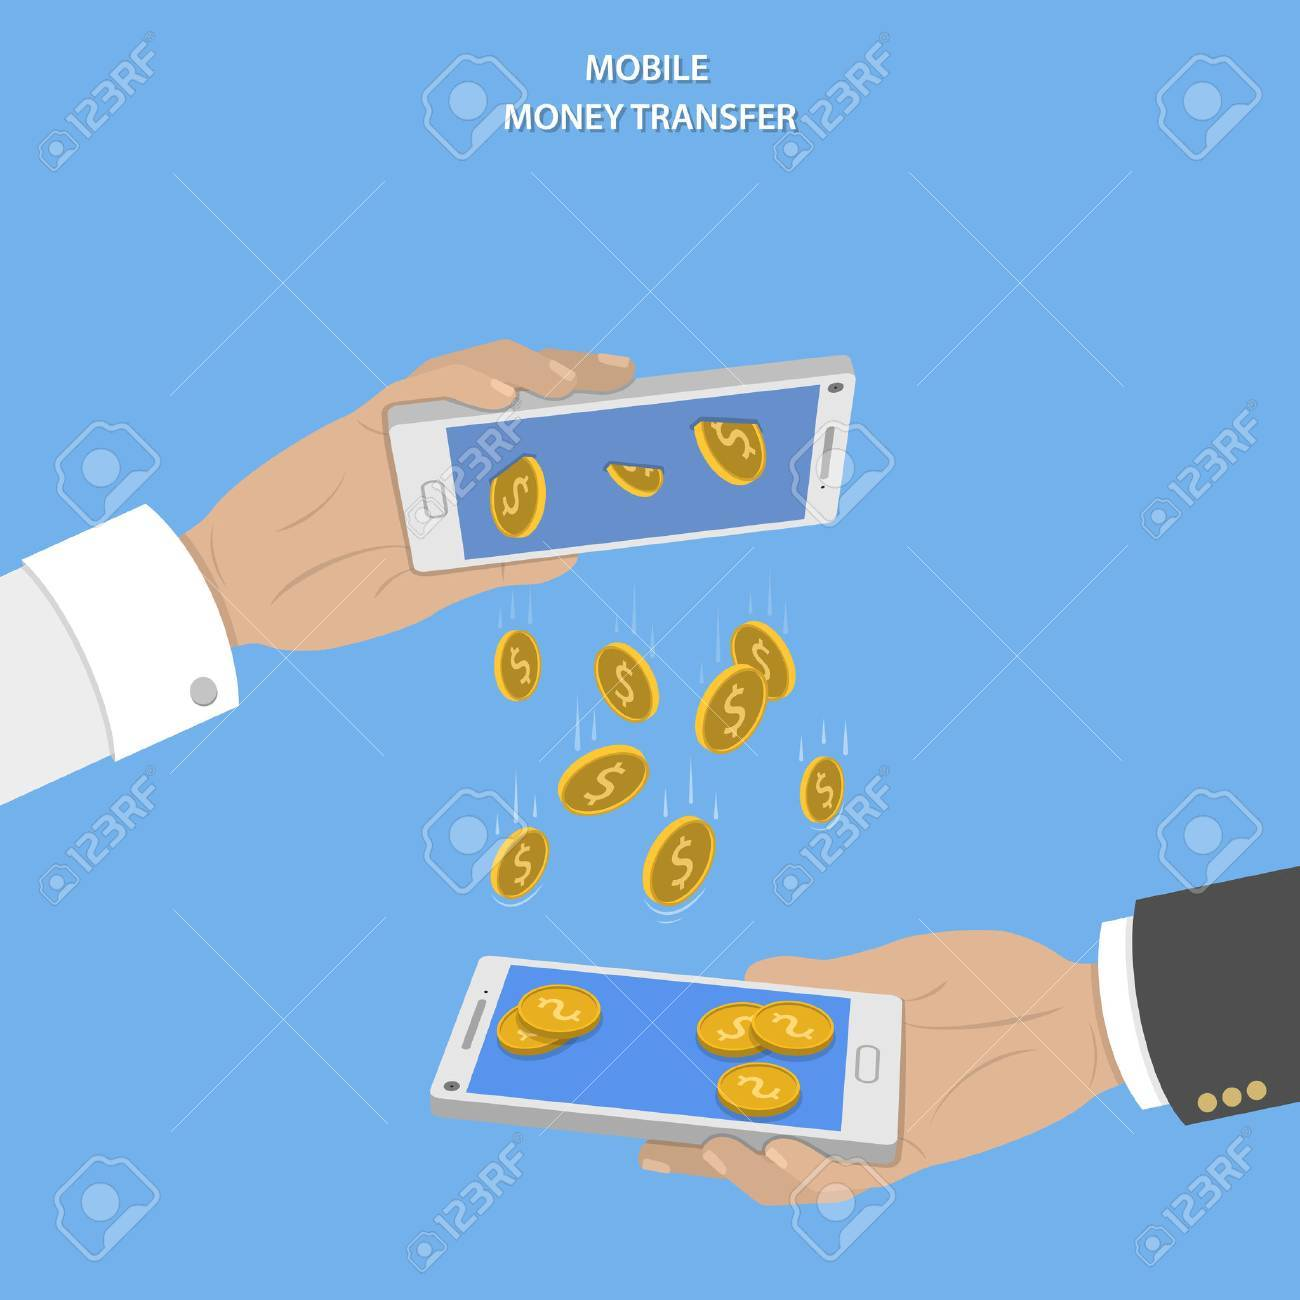 Mobile money transfer vector concept. Two hands take mobile devices and exchange coins. - 42439833